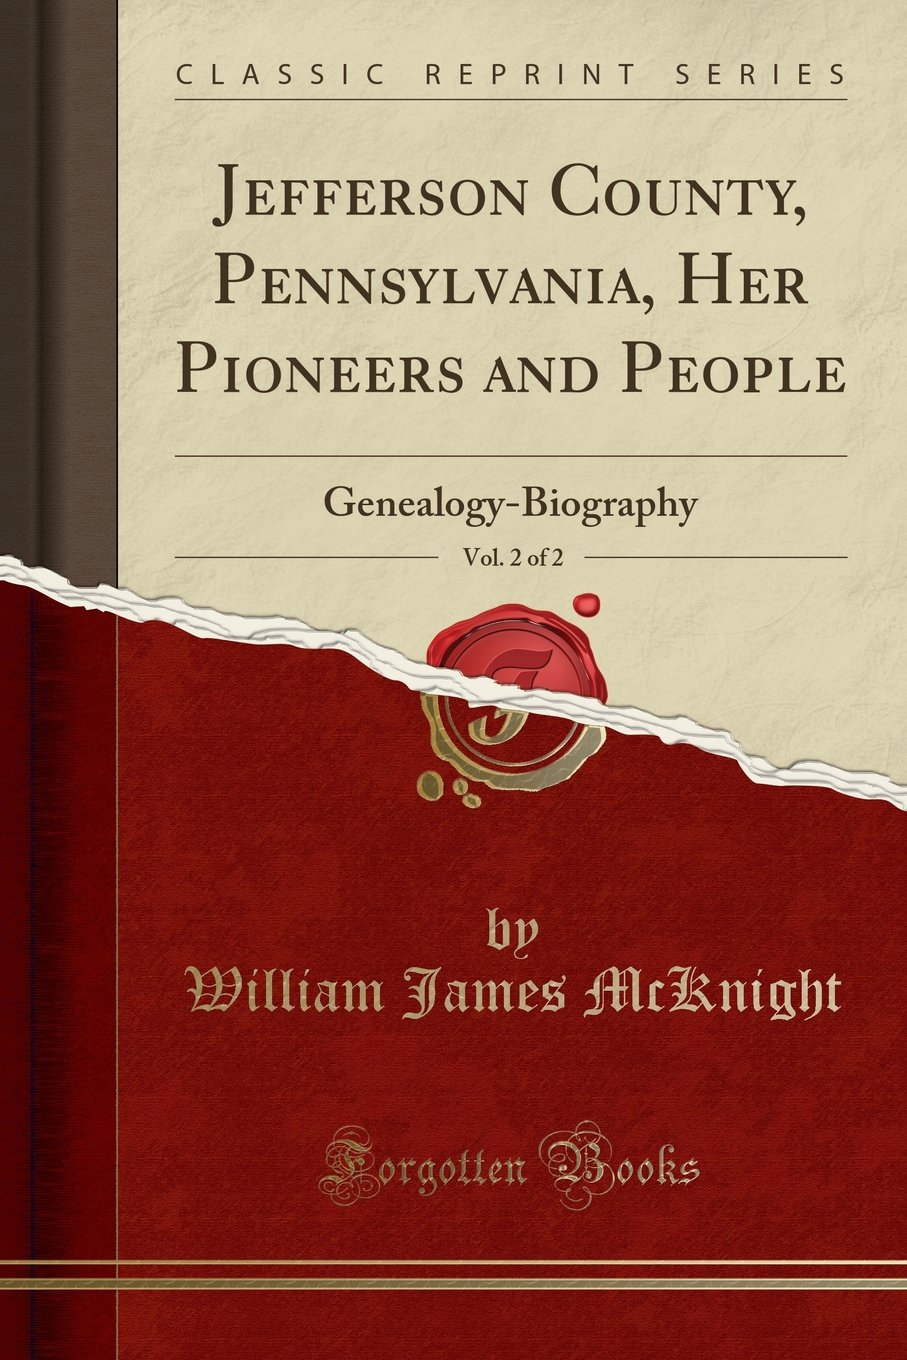 Download Jefferson County, Pennsylvania, Her Pioneers and People, Vol. 2 of 2: Genealogy-Biography (Classic Reprint) Text fb2 book